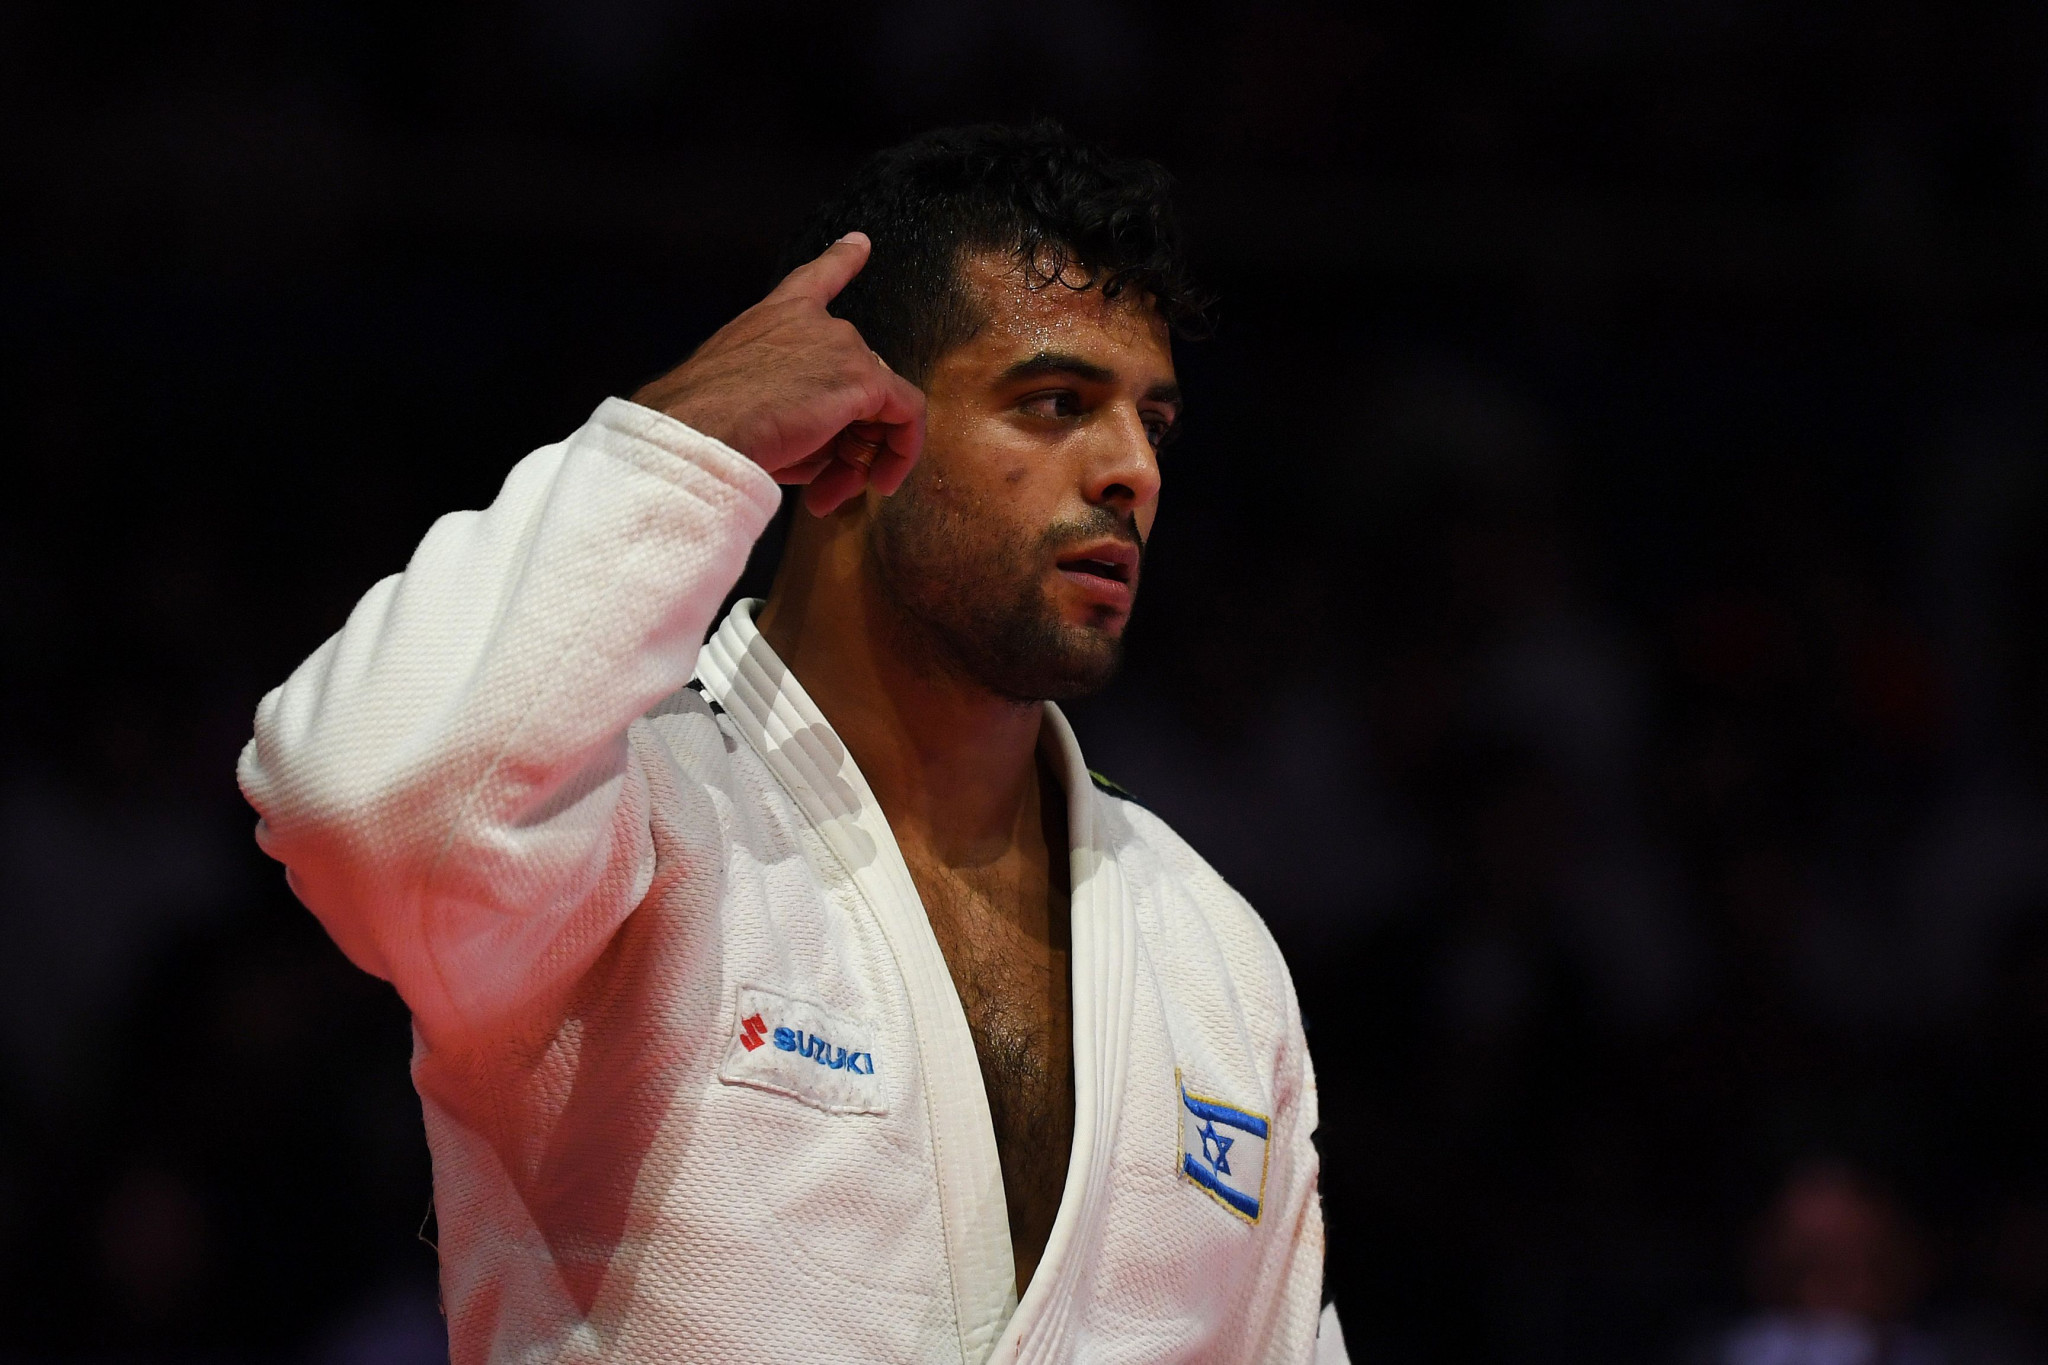 World judo champion Muki auctions off personal items to fund COVID-19 respirators